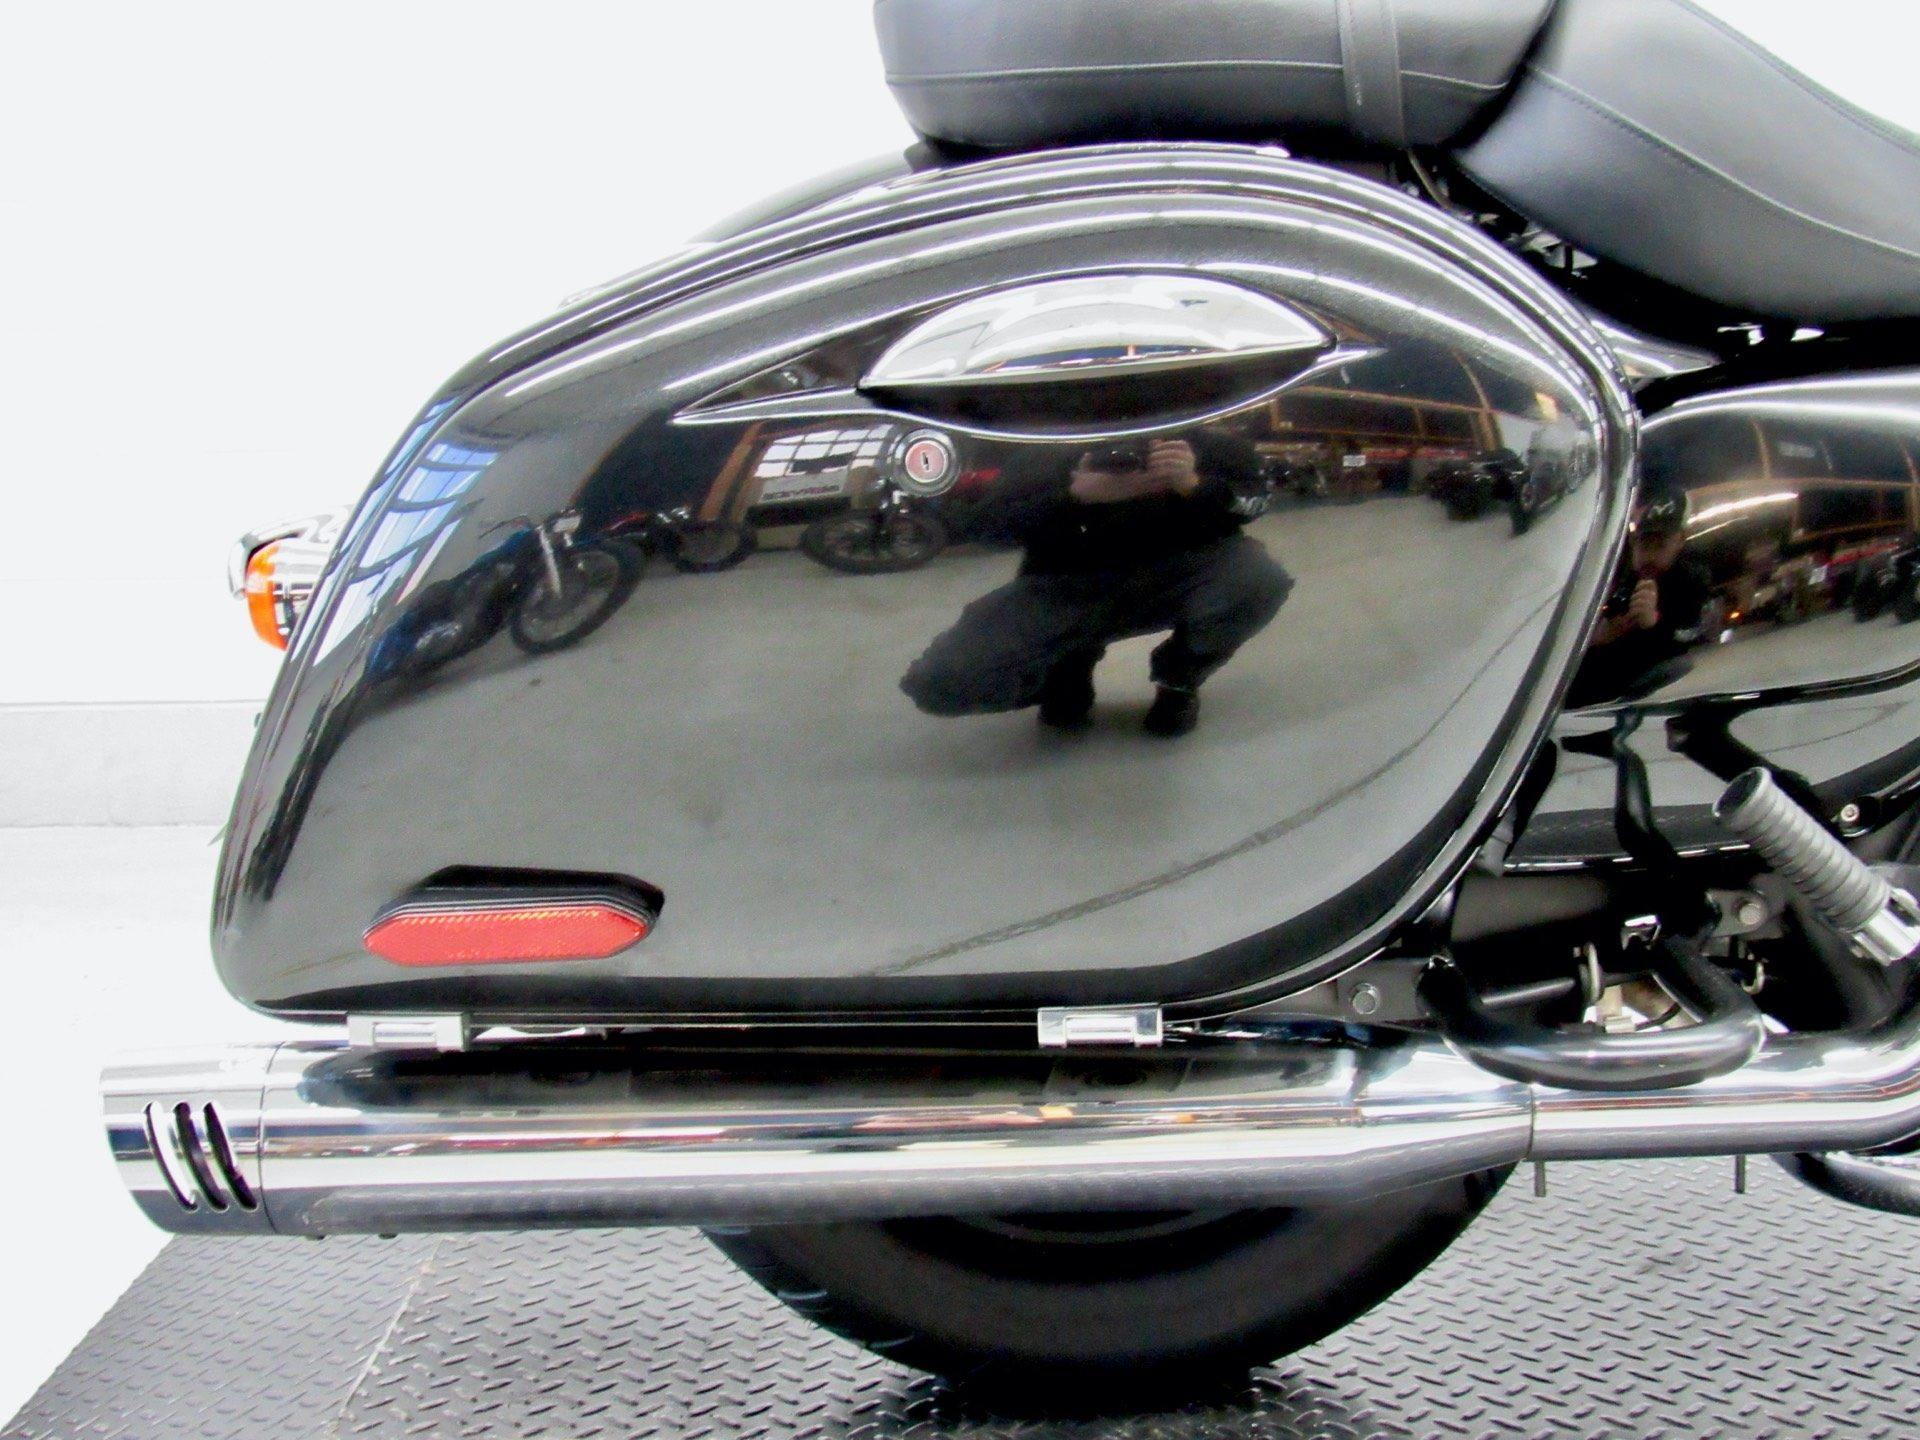 2014 Kawasaki Vulcan® 1700 Vaquero® ABS in Fredericksburg, Virginia - Photo 15